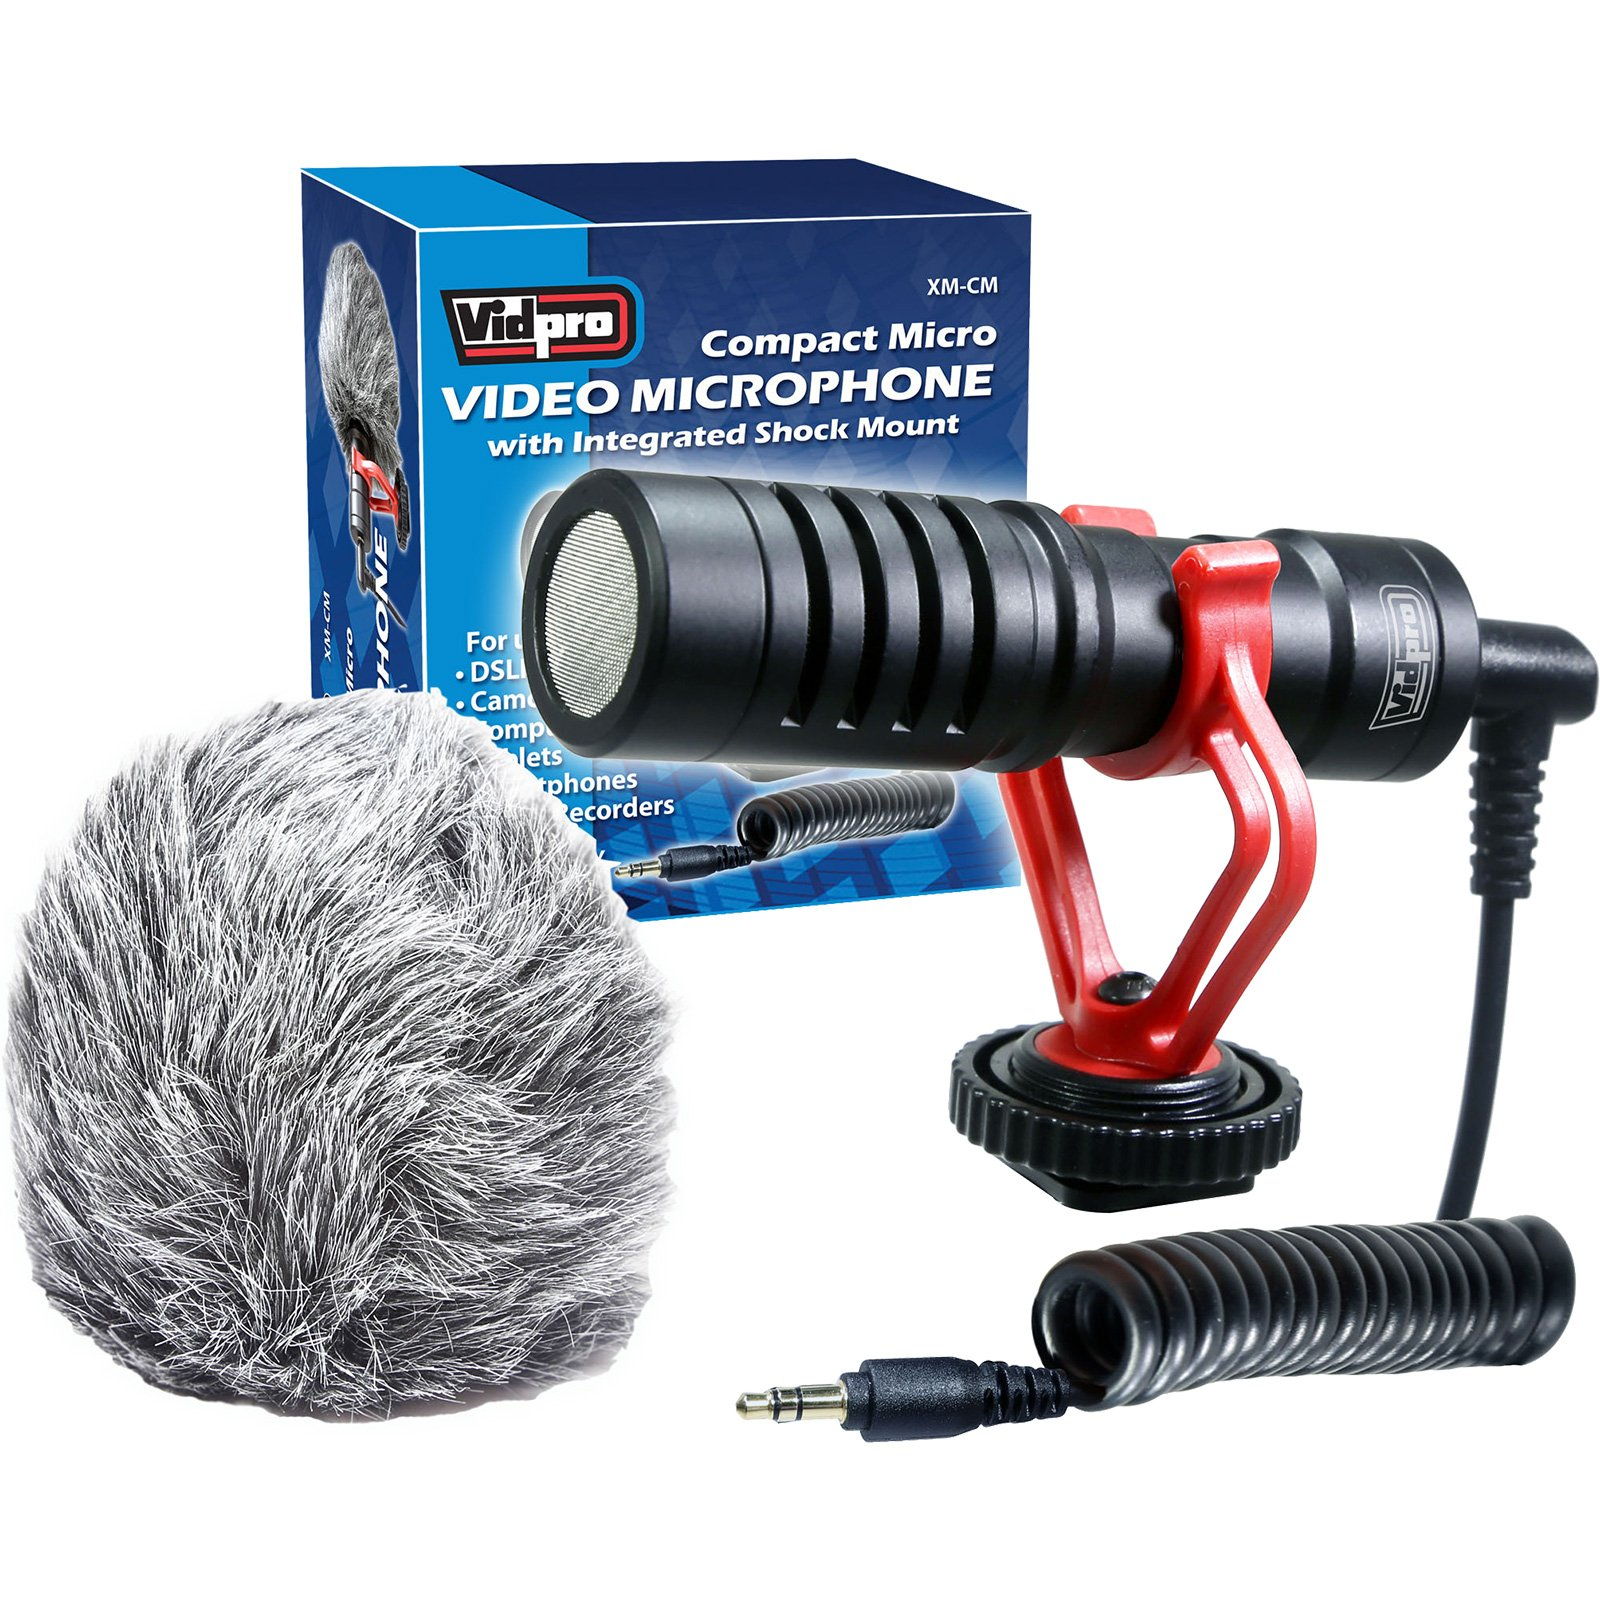 Vidpro XM-CM Compact Micro Video Microphone with Integrated Shock Mount